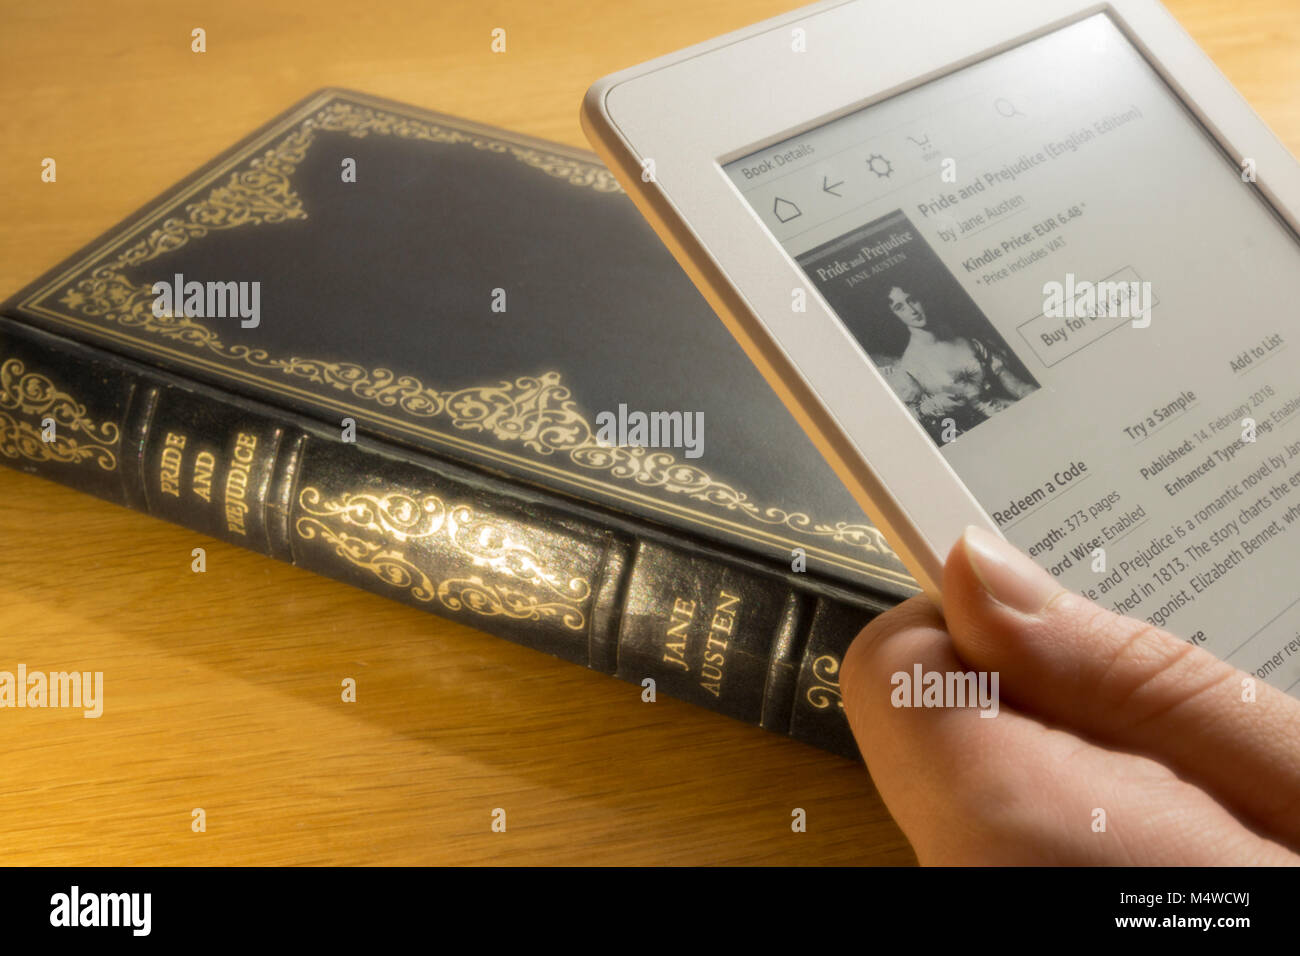 A user buying an eBook copy of Pride and Prejudice, with a hardback copy of the book in the background - Stock Image